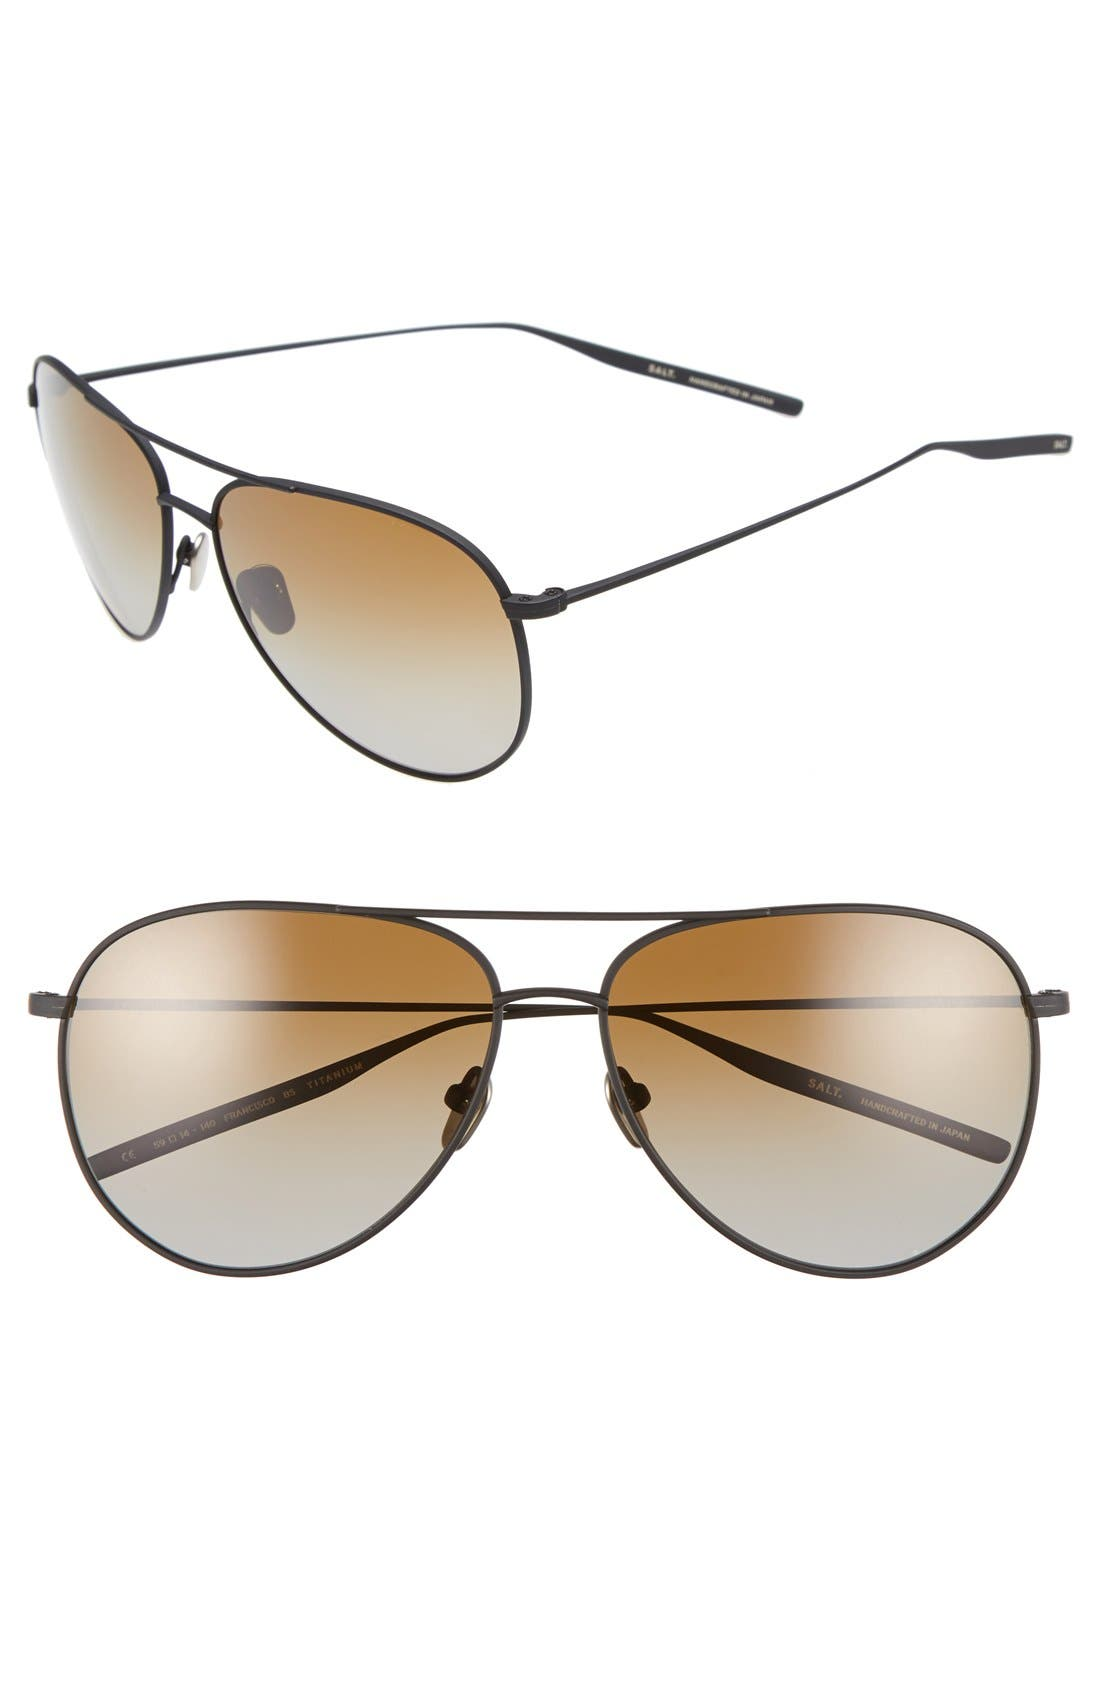 Alternate Image 1 Selected - SALT 'Francisco' 59mm Gradient Sunglasses